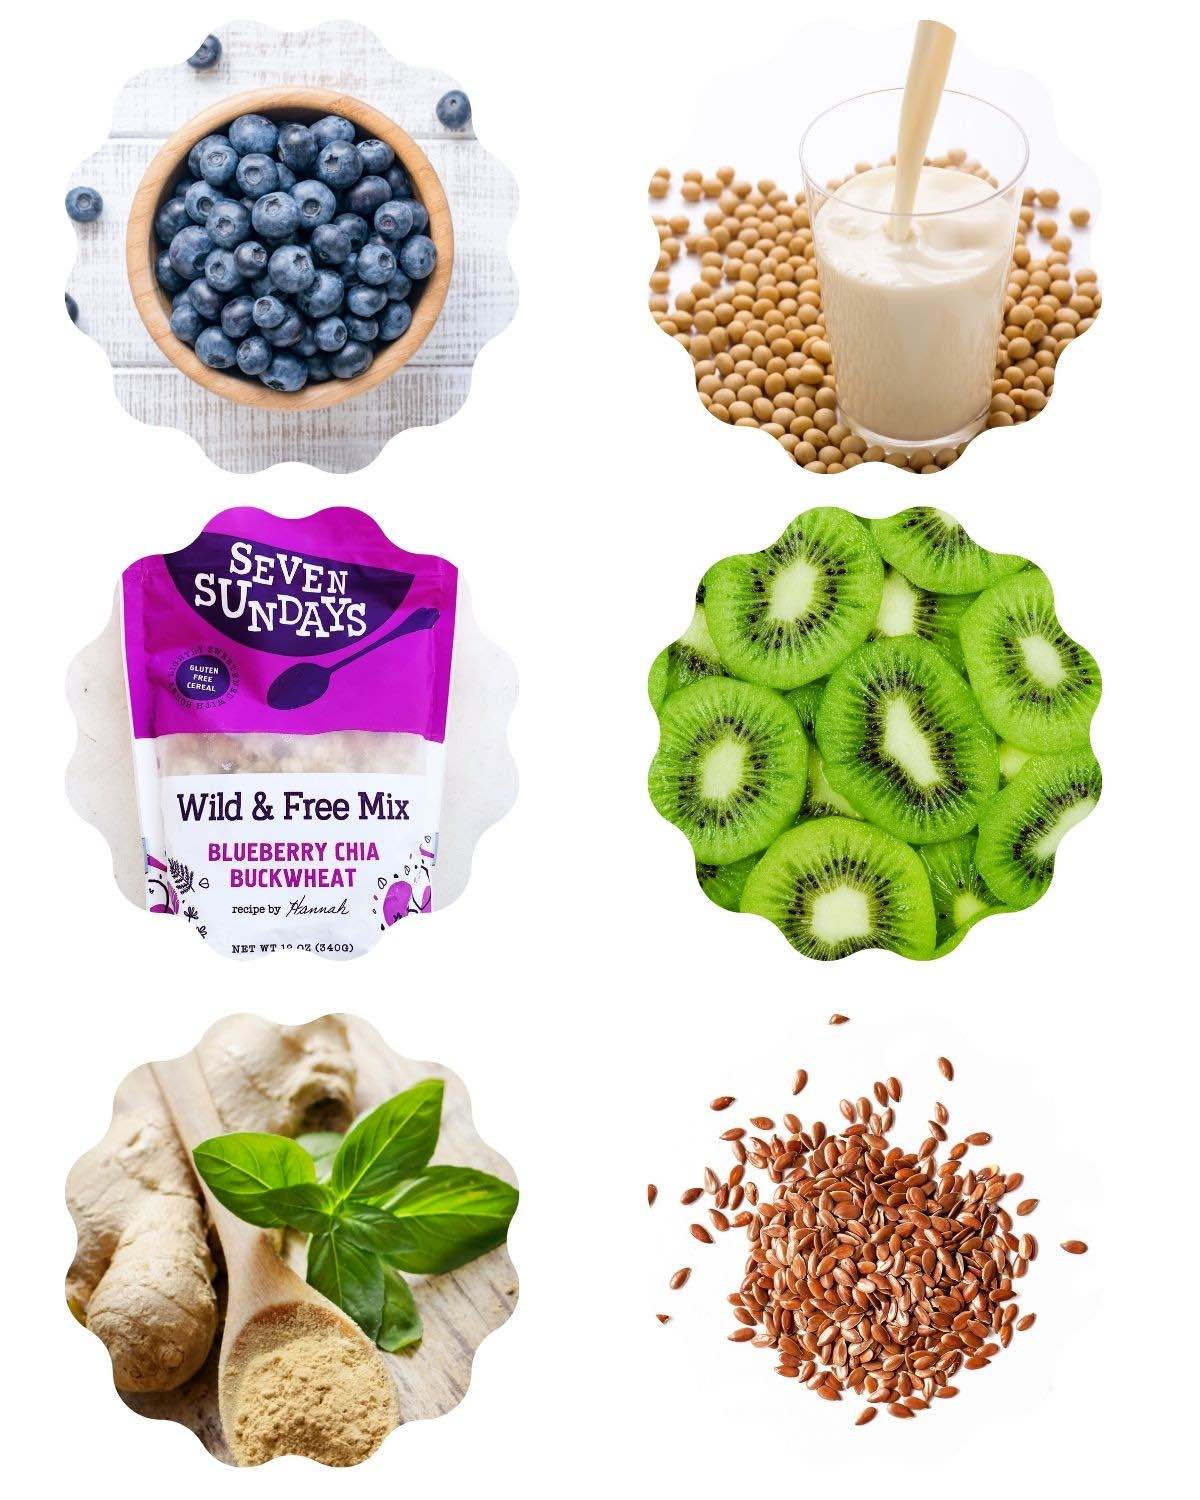 Graphic with 6 photos of ingredients including blueberries, soy milk, muesli, kiwi fruit, ginger, and flaxseeds.